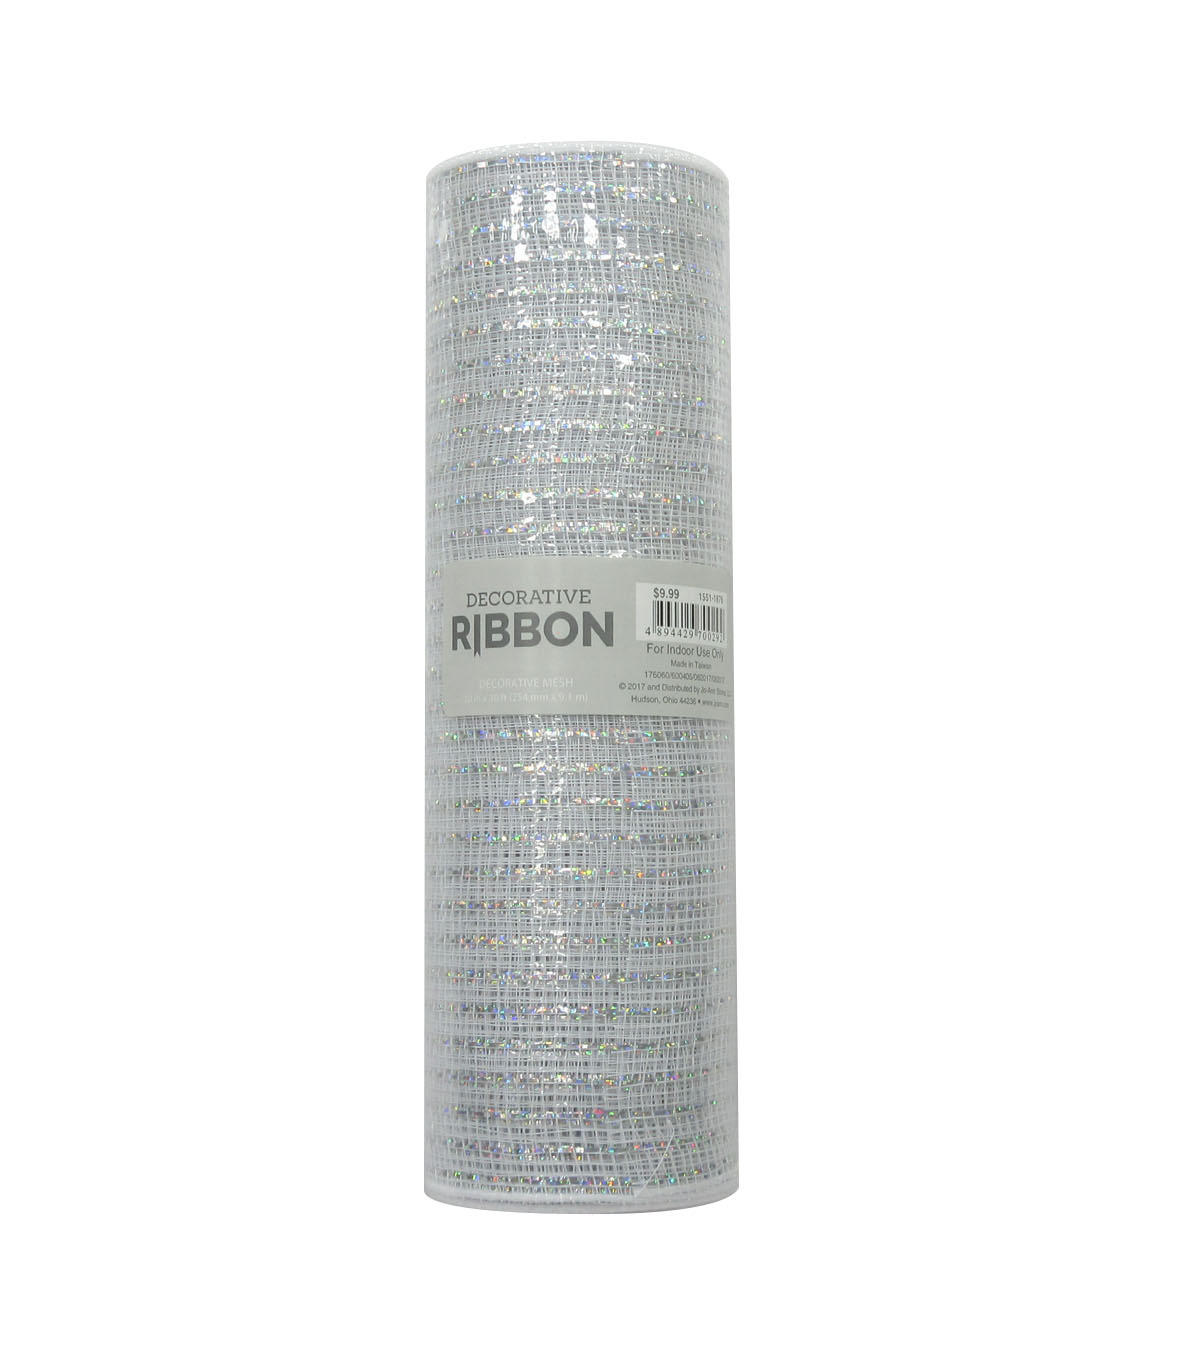 Decorative Ribbon Metallic Deco Mesh 10\u0027\u0027x10 yds-White